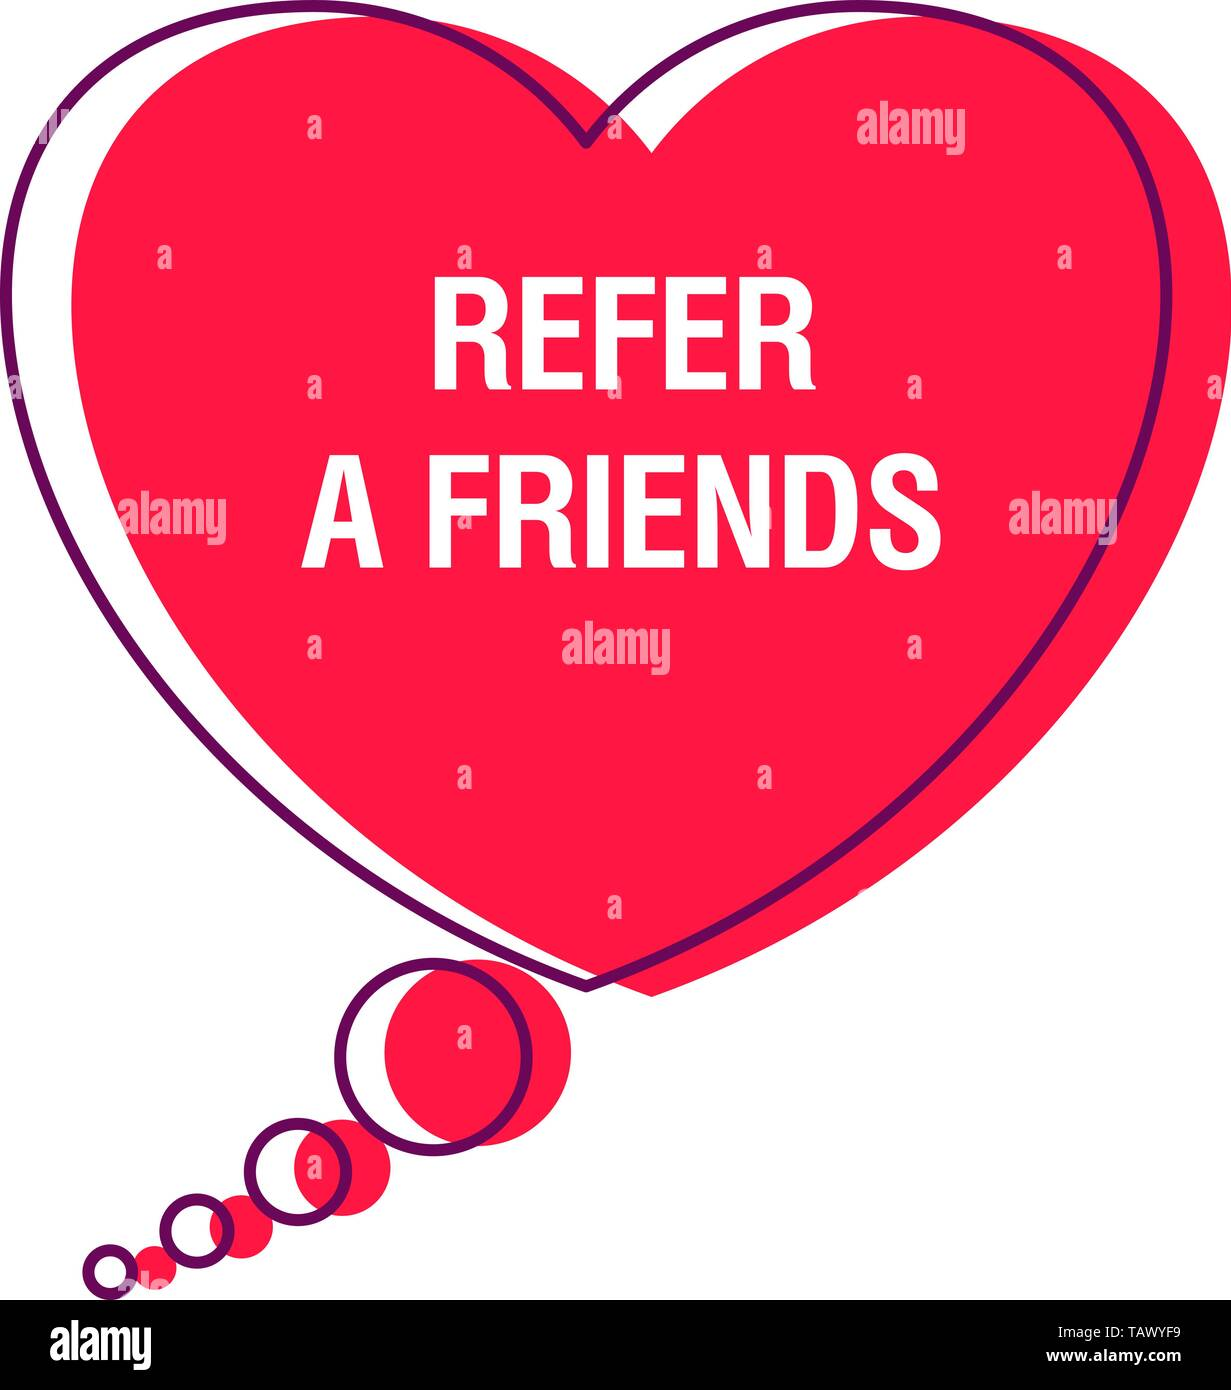 Refer a friends speech bubble - Stock Image